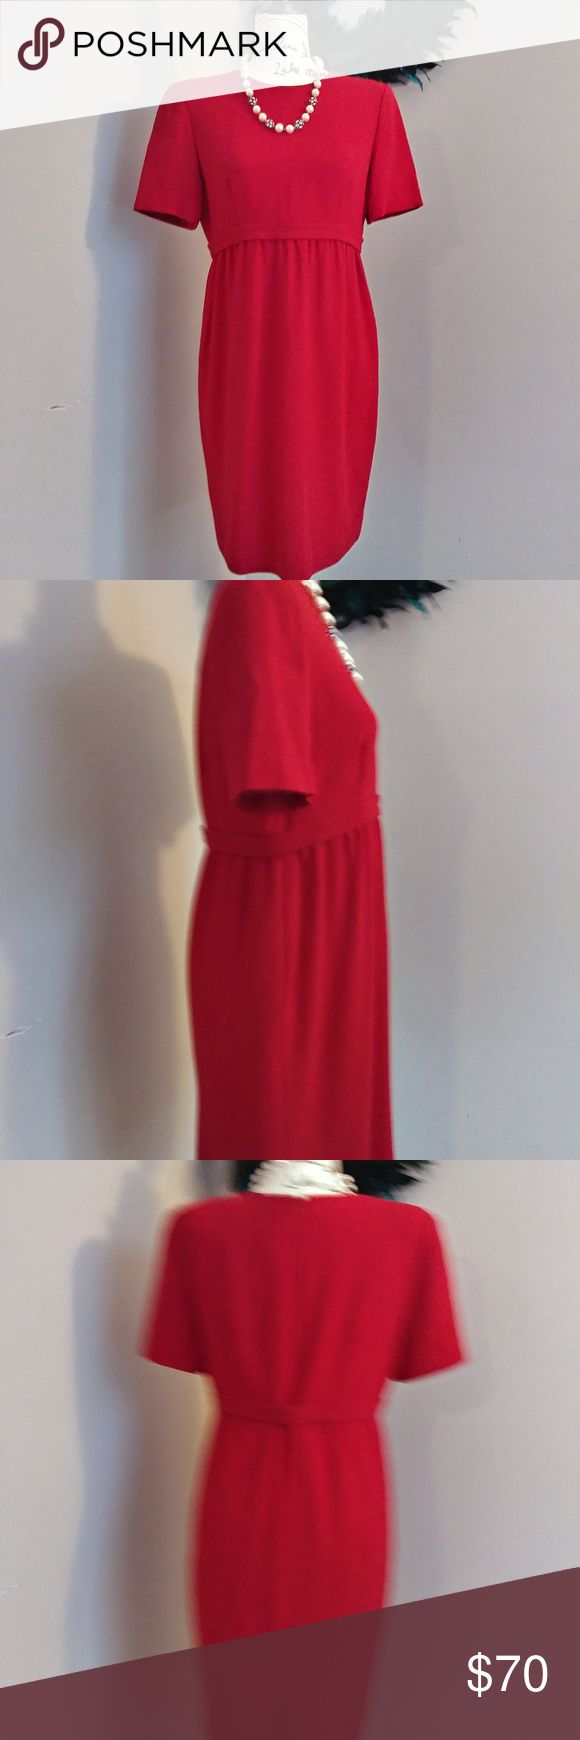 Women's Vintage Petite Dress by Liz Claiborne This vintage petite dress by Liz Claiborne is is EUC, no smells, tears or stains. It's a gorgeous cherry red and would look amazing at your Holiday Party. It has a full zipper in the back with 2 fully functioning hook and eye closures in the middle of the back. It's so pretty! 70% Triacetate and 30% Polyester  Women's Petite Size 10P  Measurements upon request  Smoke Free Vegan Home  Please feel free to ask questions about any of my items, I'm…